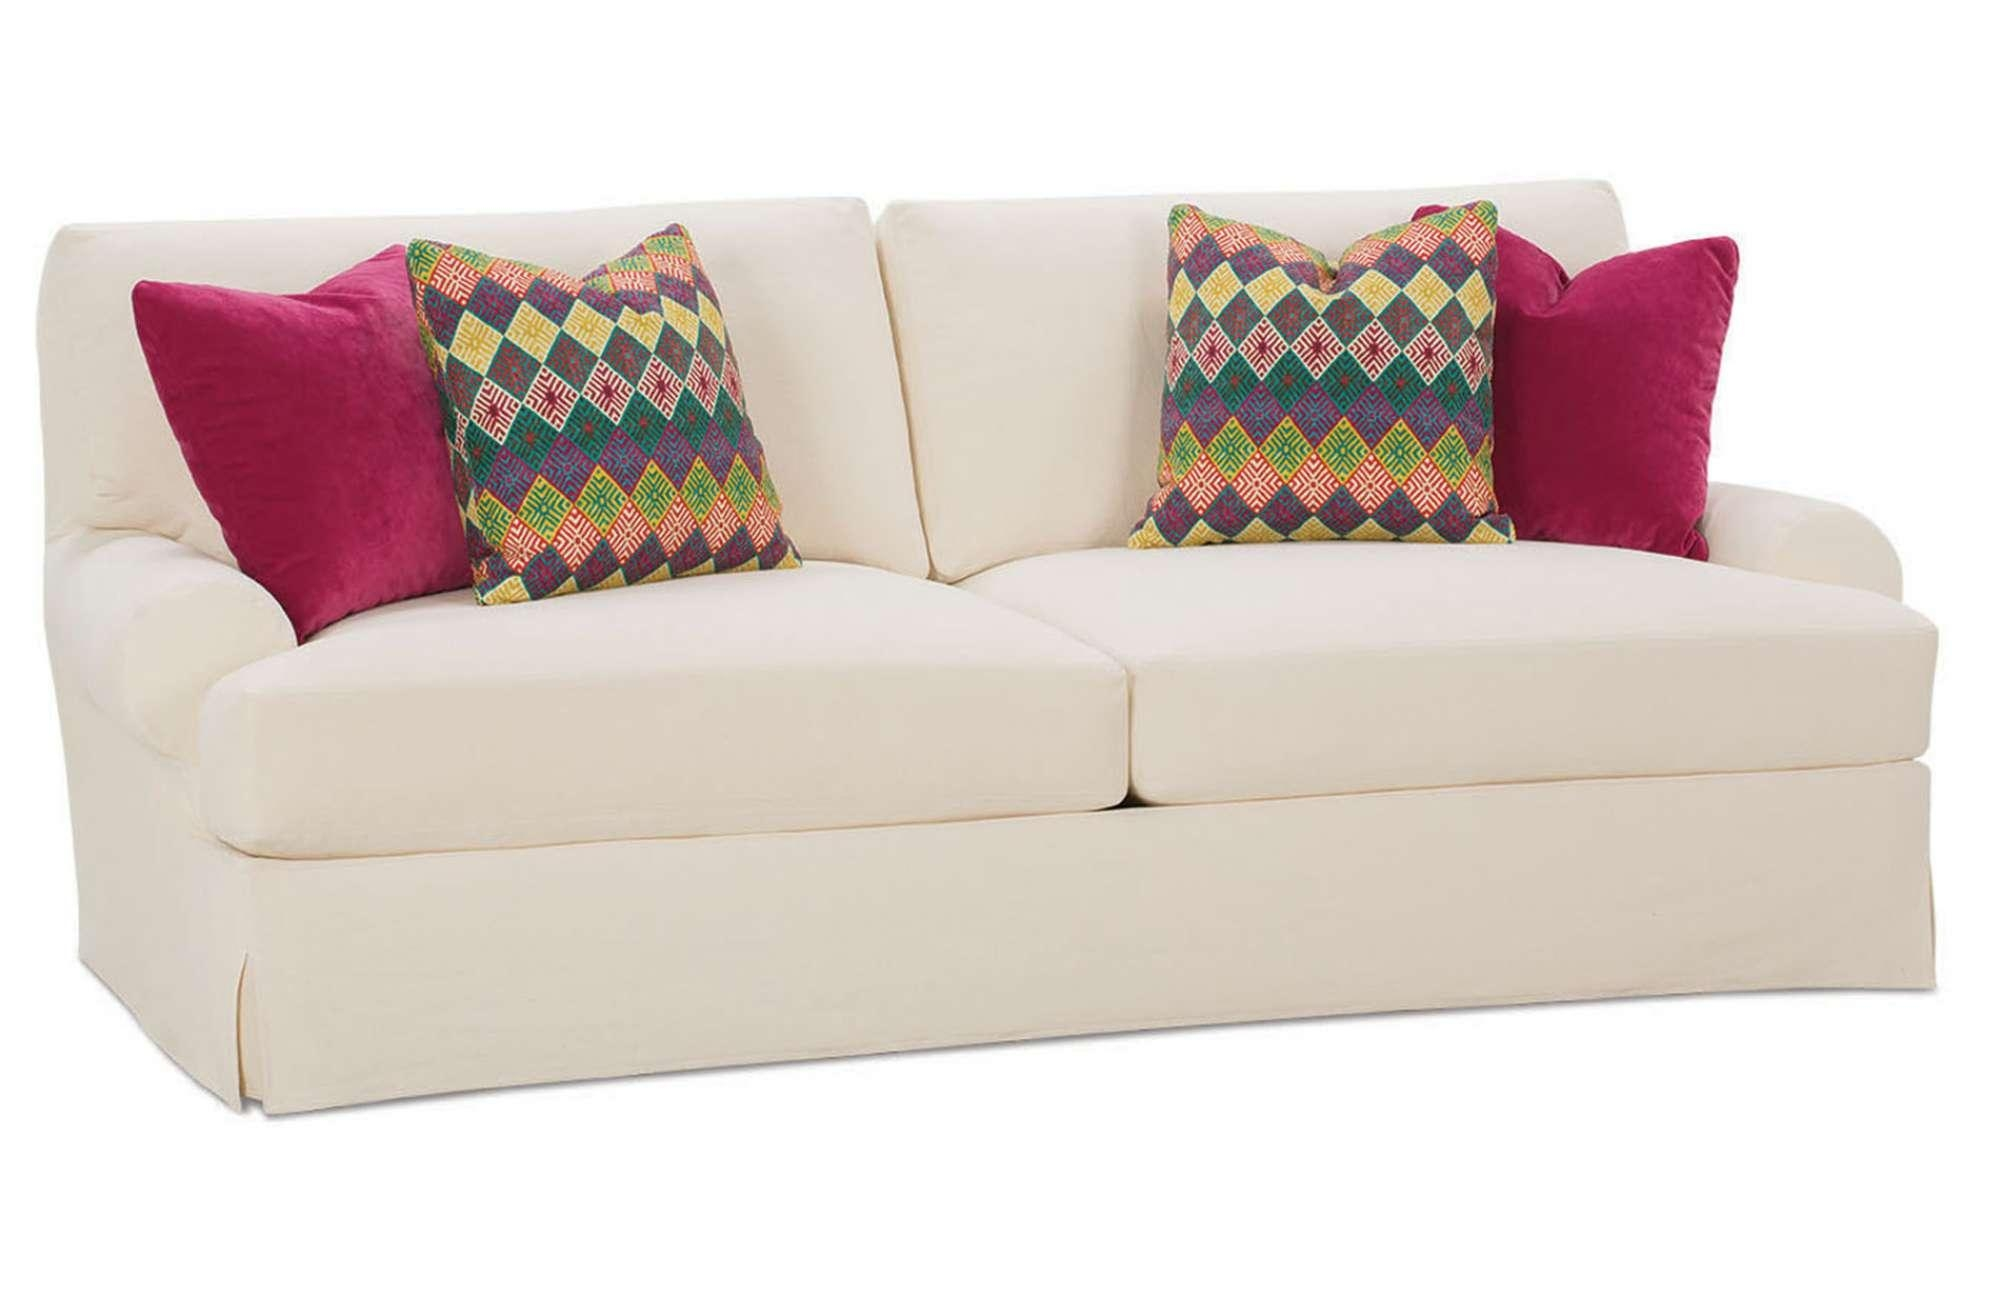 Sofas : Magnificent Extra Long Sofa Slipcover Large Couch For Large Sofa Slipcovers (Image 15 of 23)